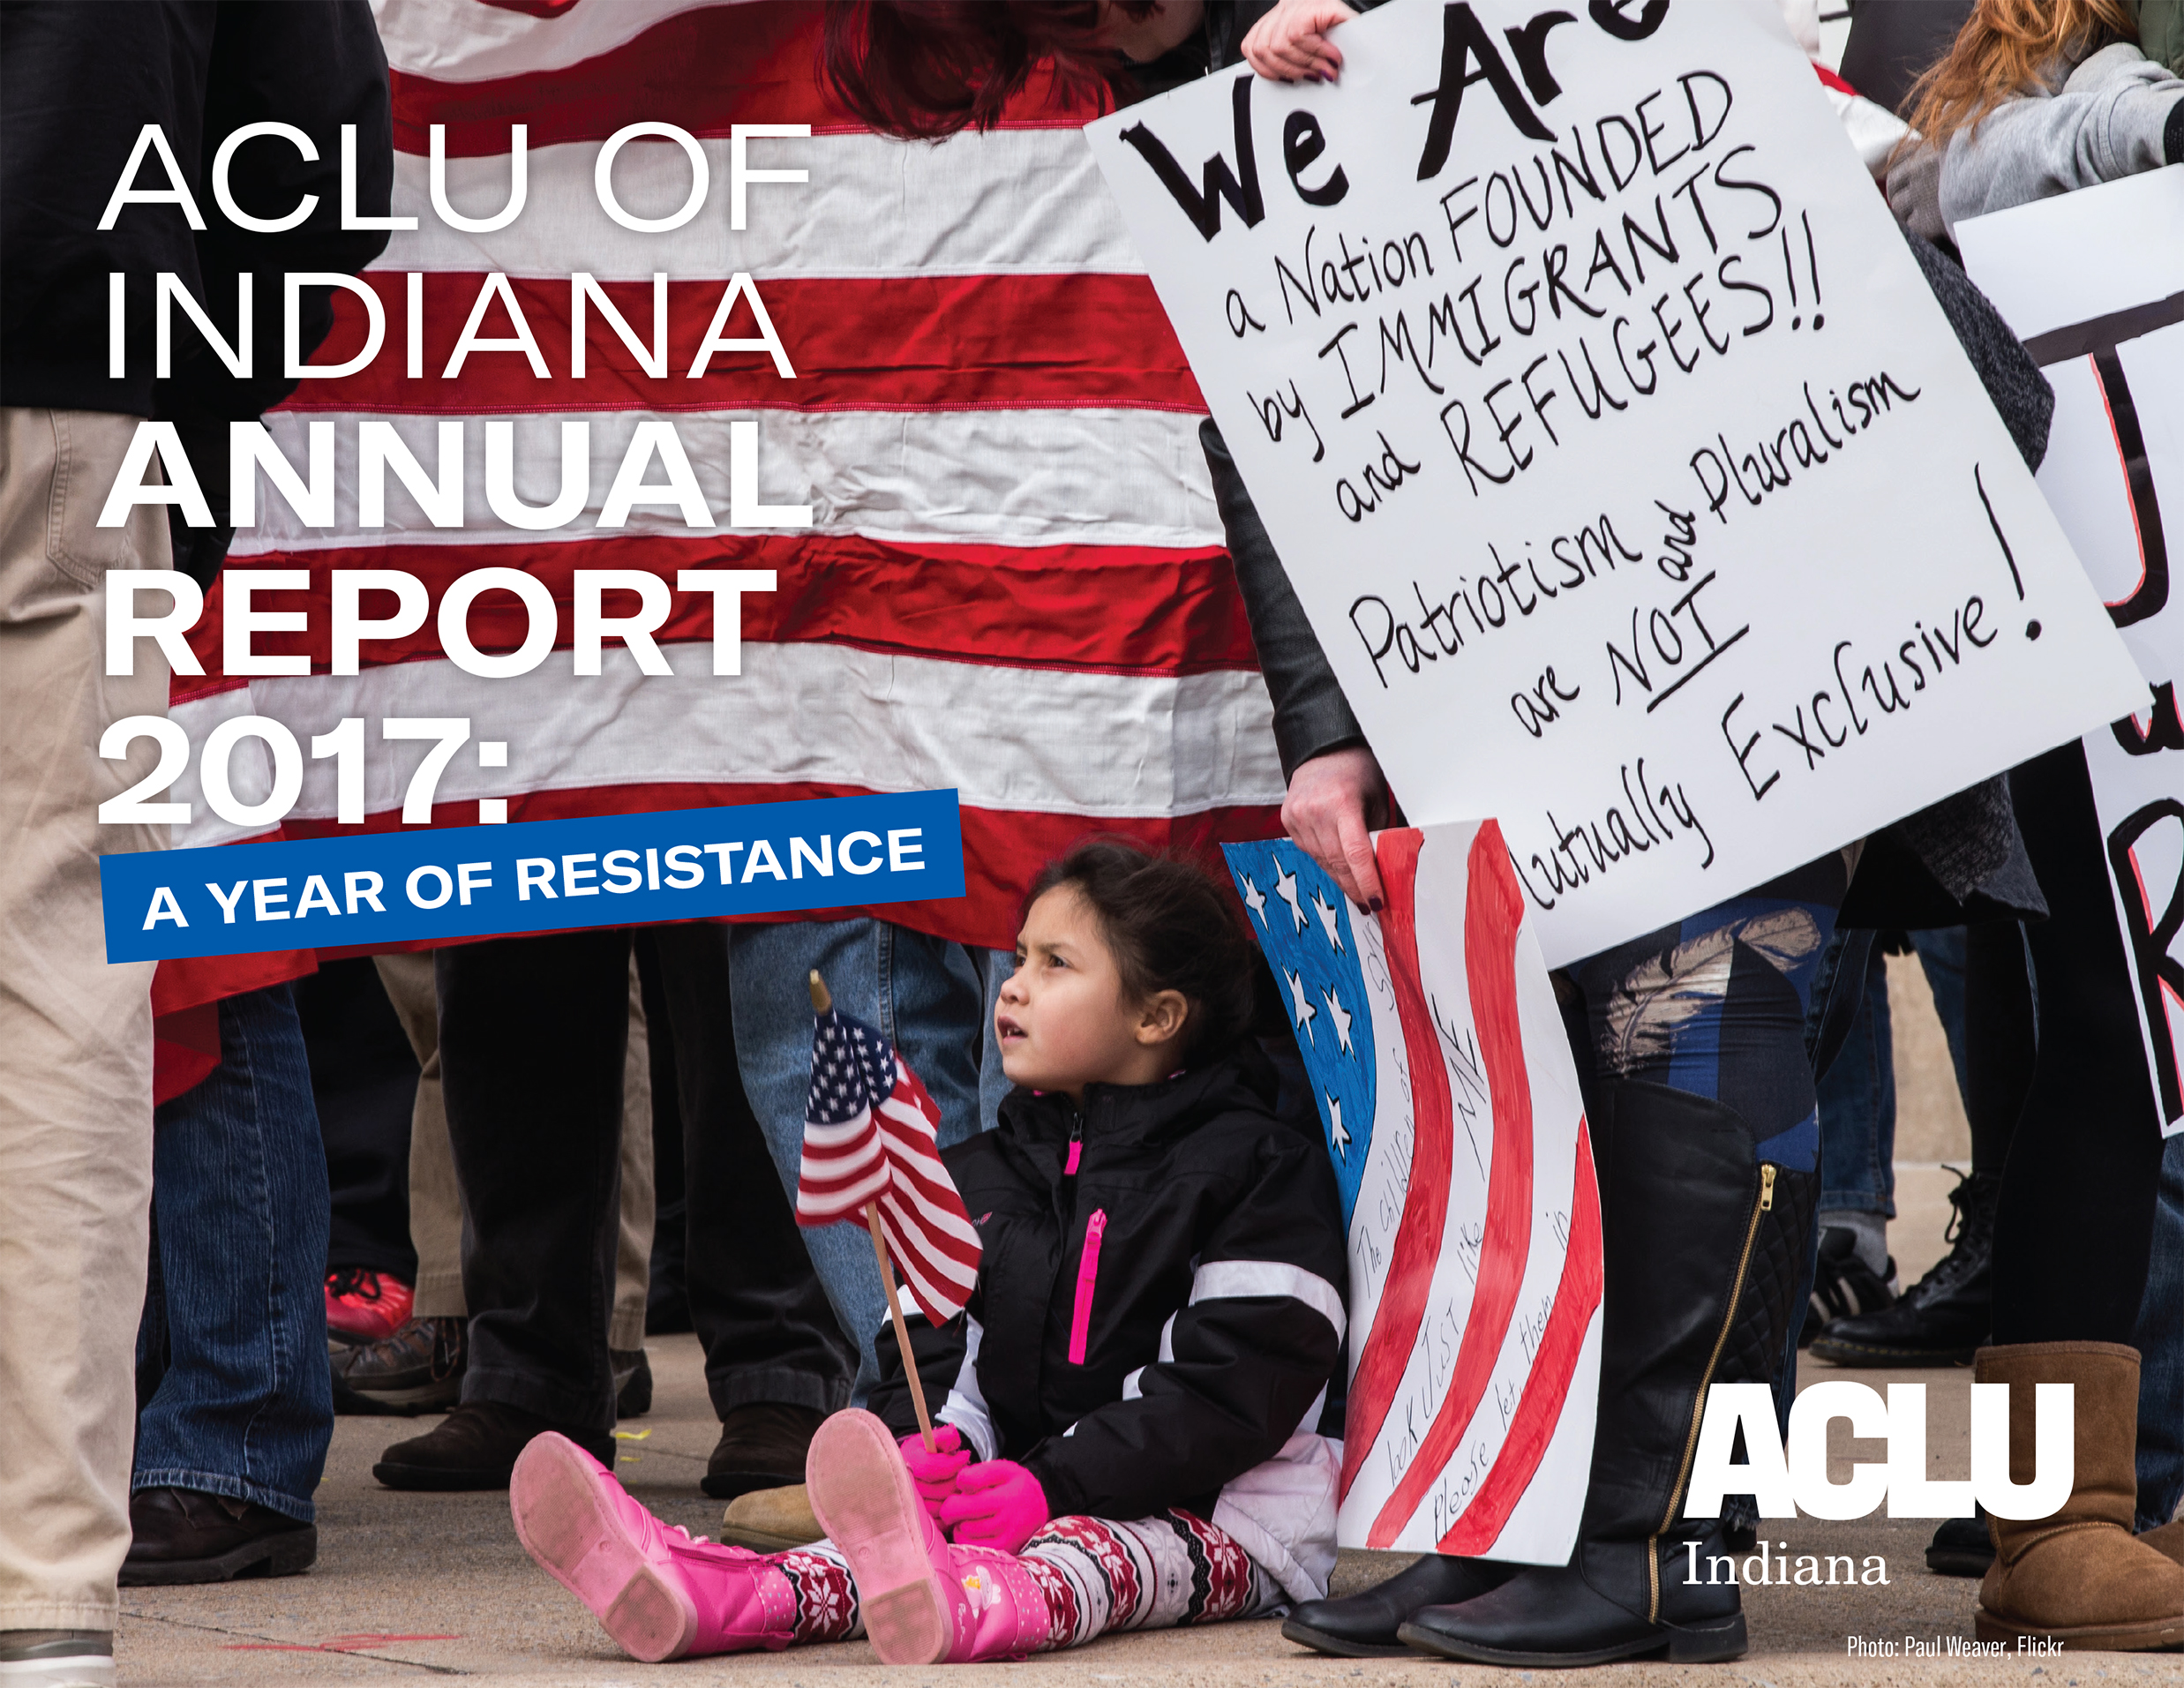 ACLU of Indiana's 2017 annual report